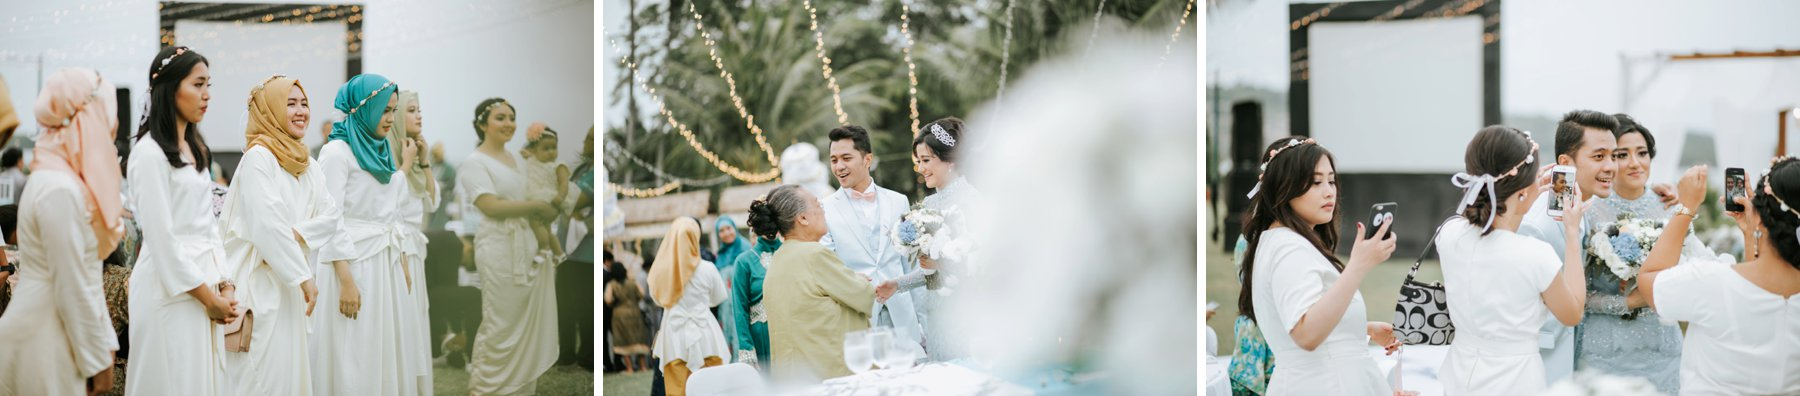 Intercontinental_bali_wedding_0049